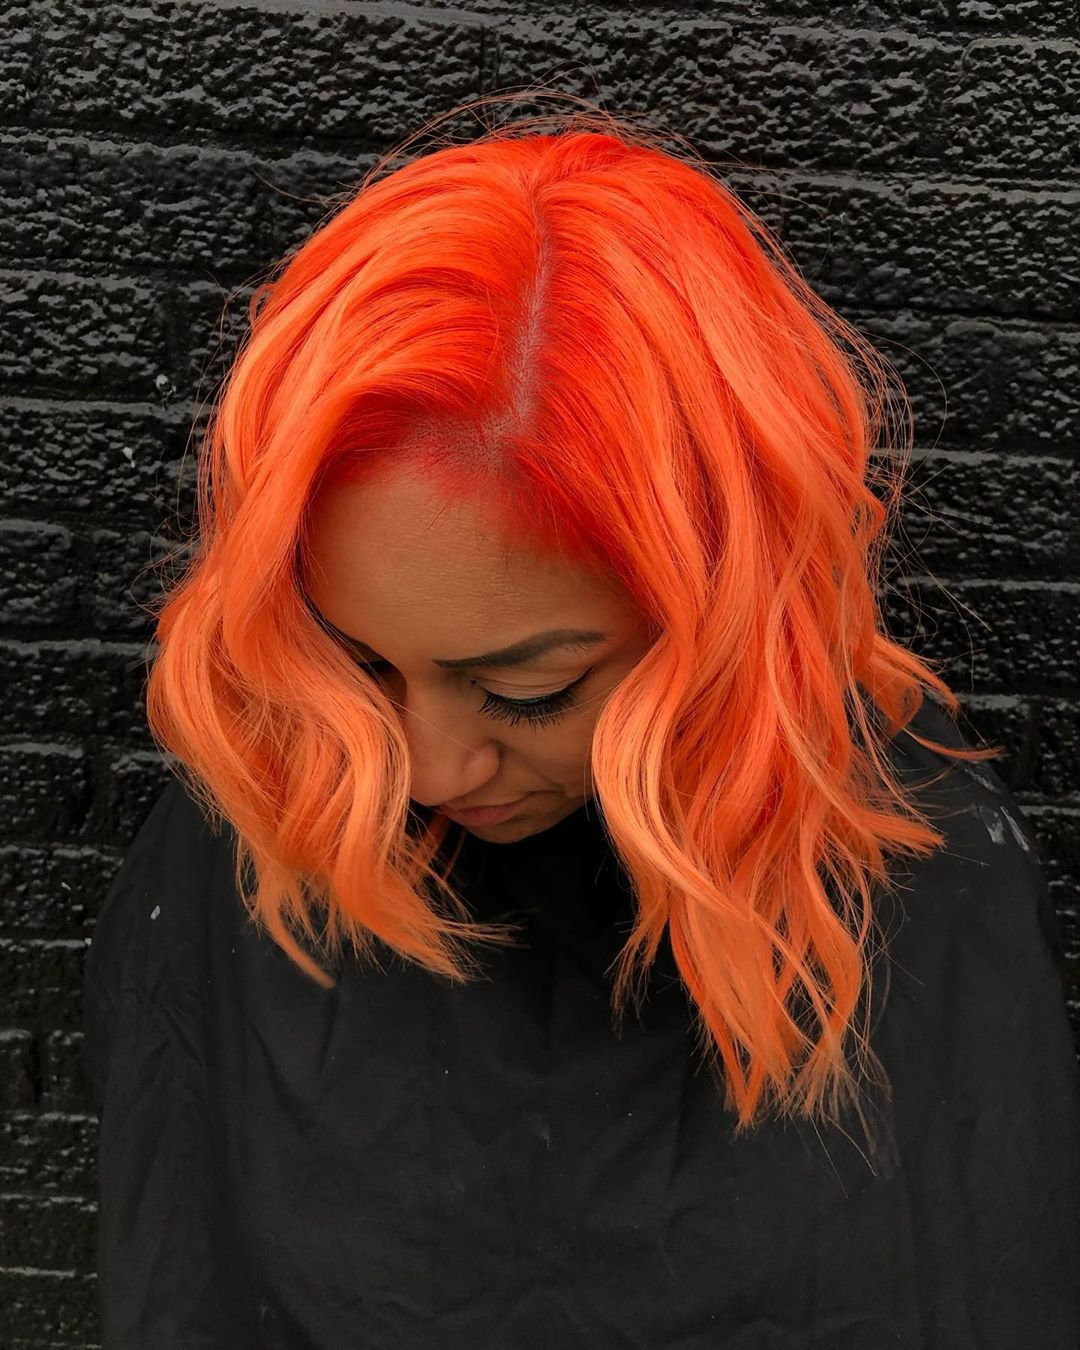 Arctic Fox Hair Color Lizzvargashair Orange Is One Of My Favorite Colors Finished My Day Creating This Bright Hair Colors Fox Hair Dye Neon Hair Color